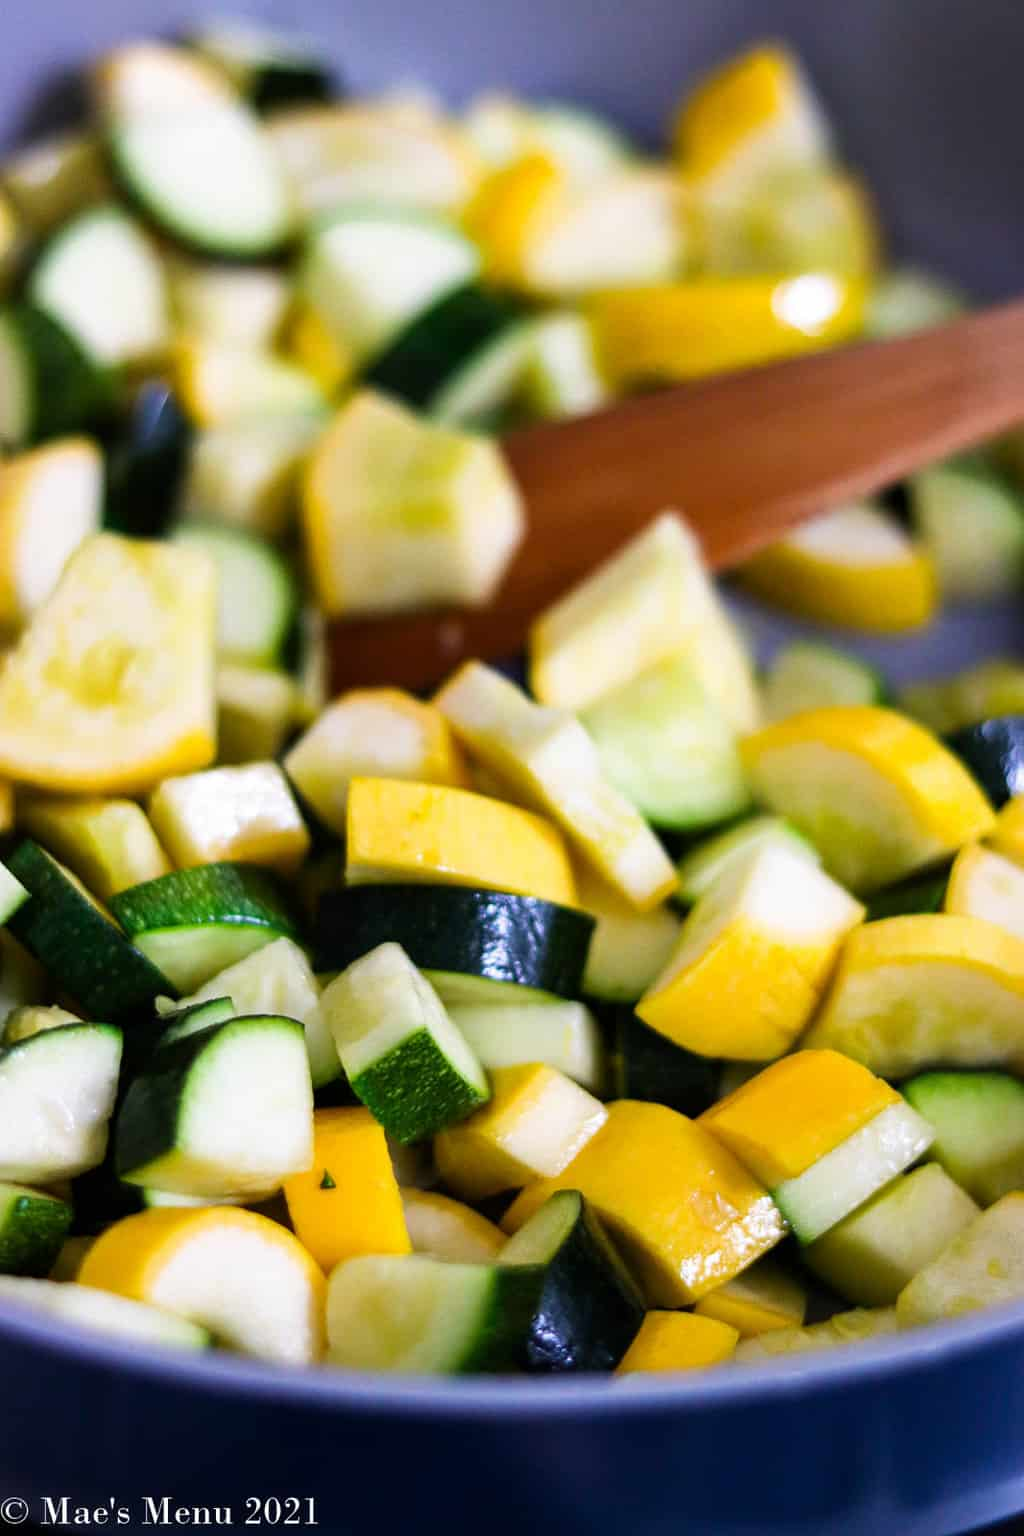 A side shot of a pan of sauteeing yellow and zucchini squash